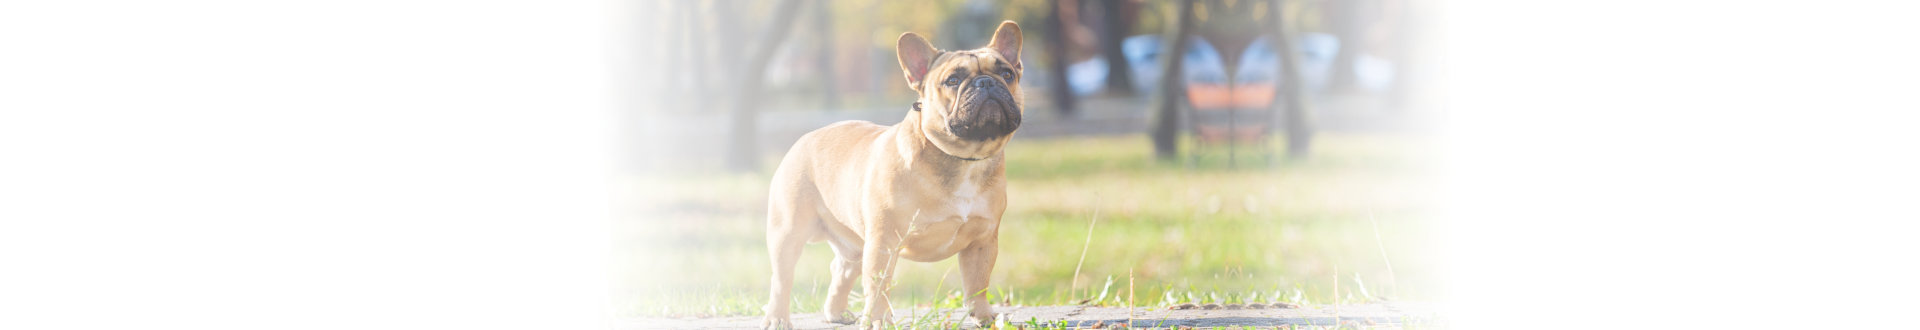 french bulldog in a park